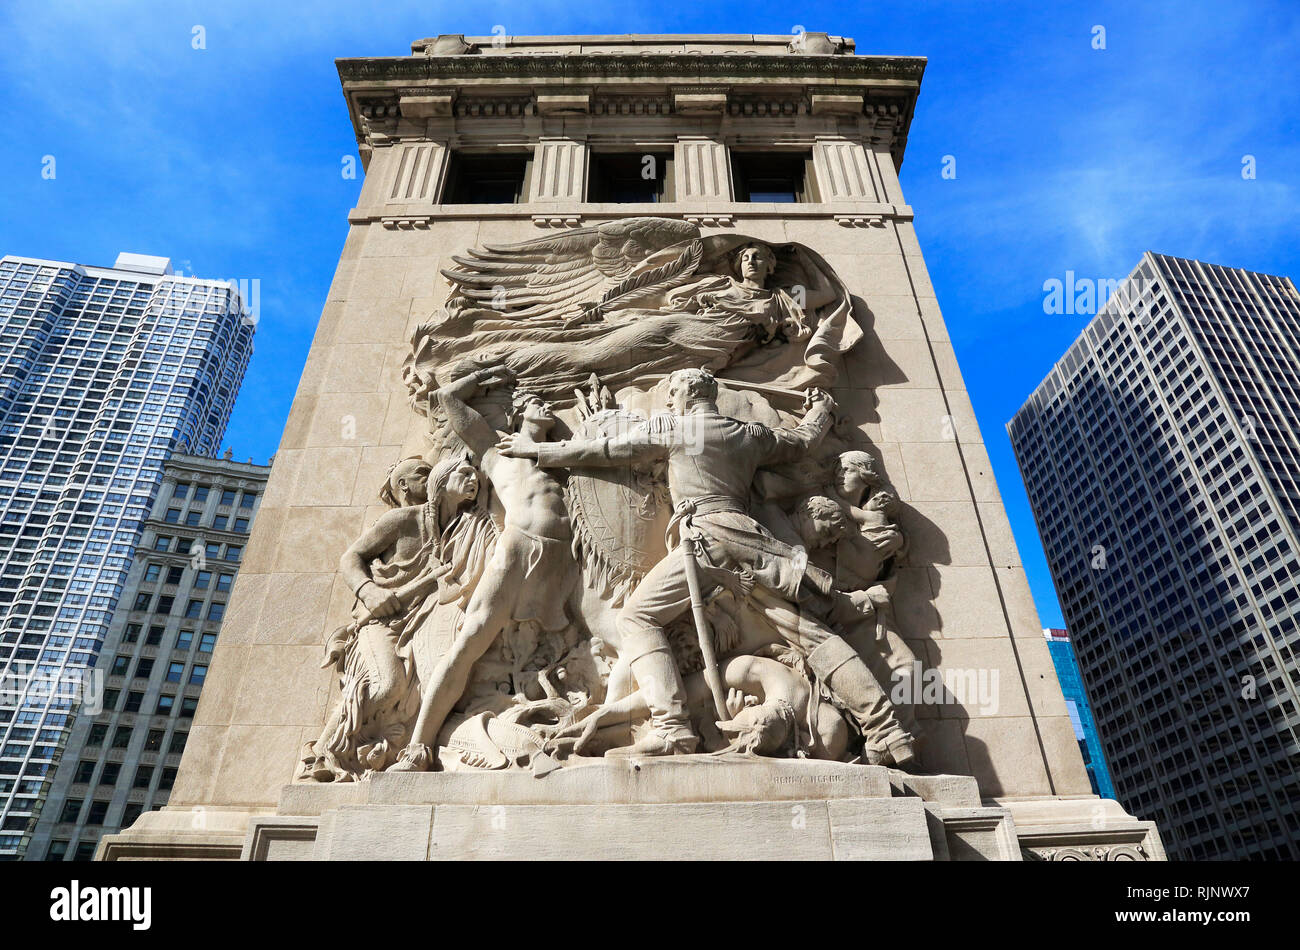 Sculpture of Defense made by American sculptor Henry Hering decorated bridge tender house of Michigan Avenue Bridge.Chicago.Illinois.USA - Stock Image